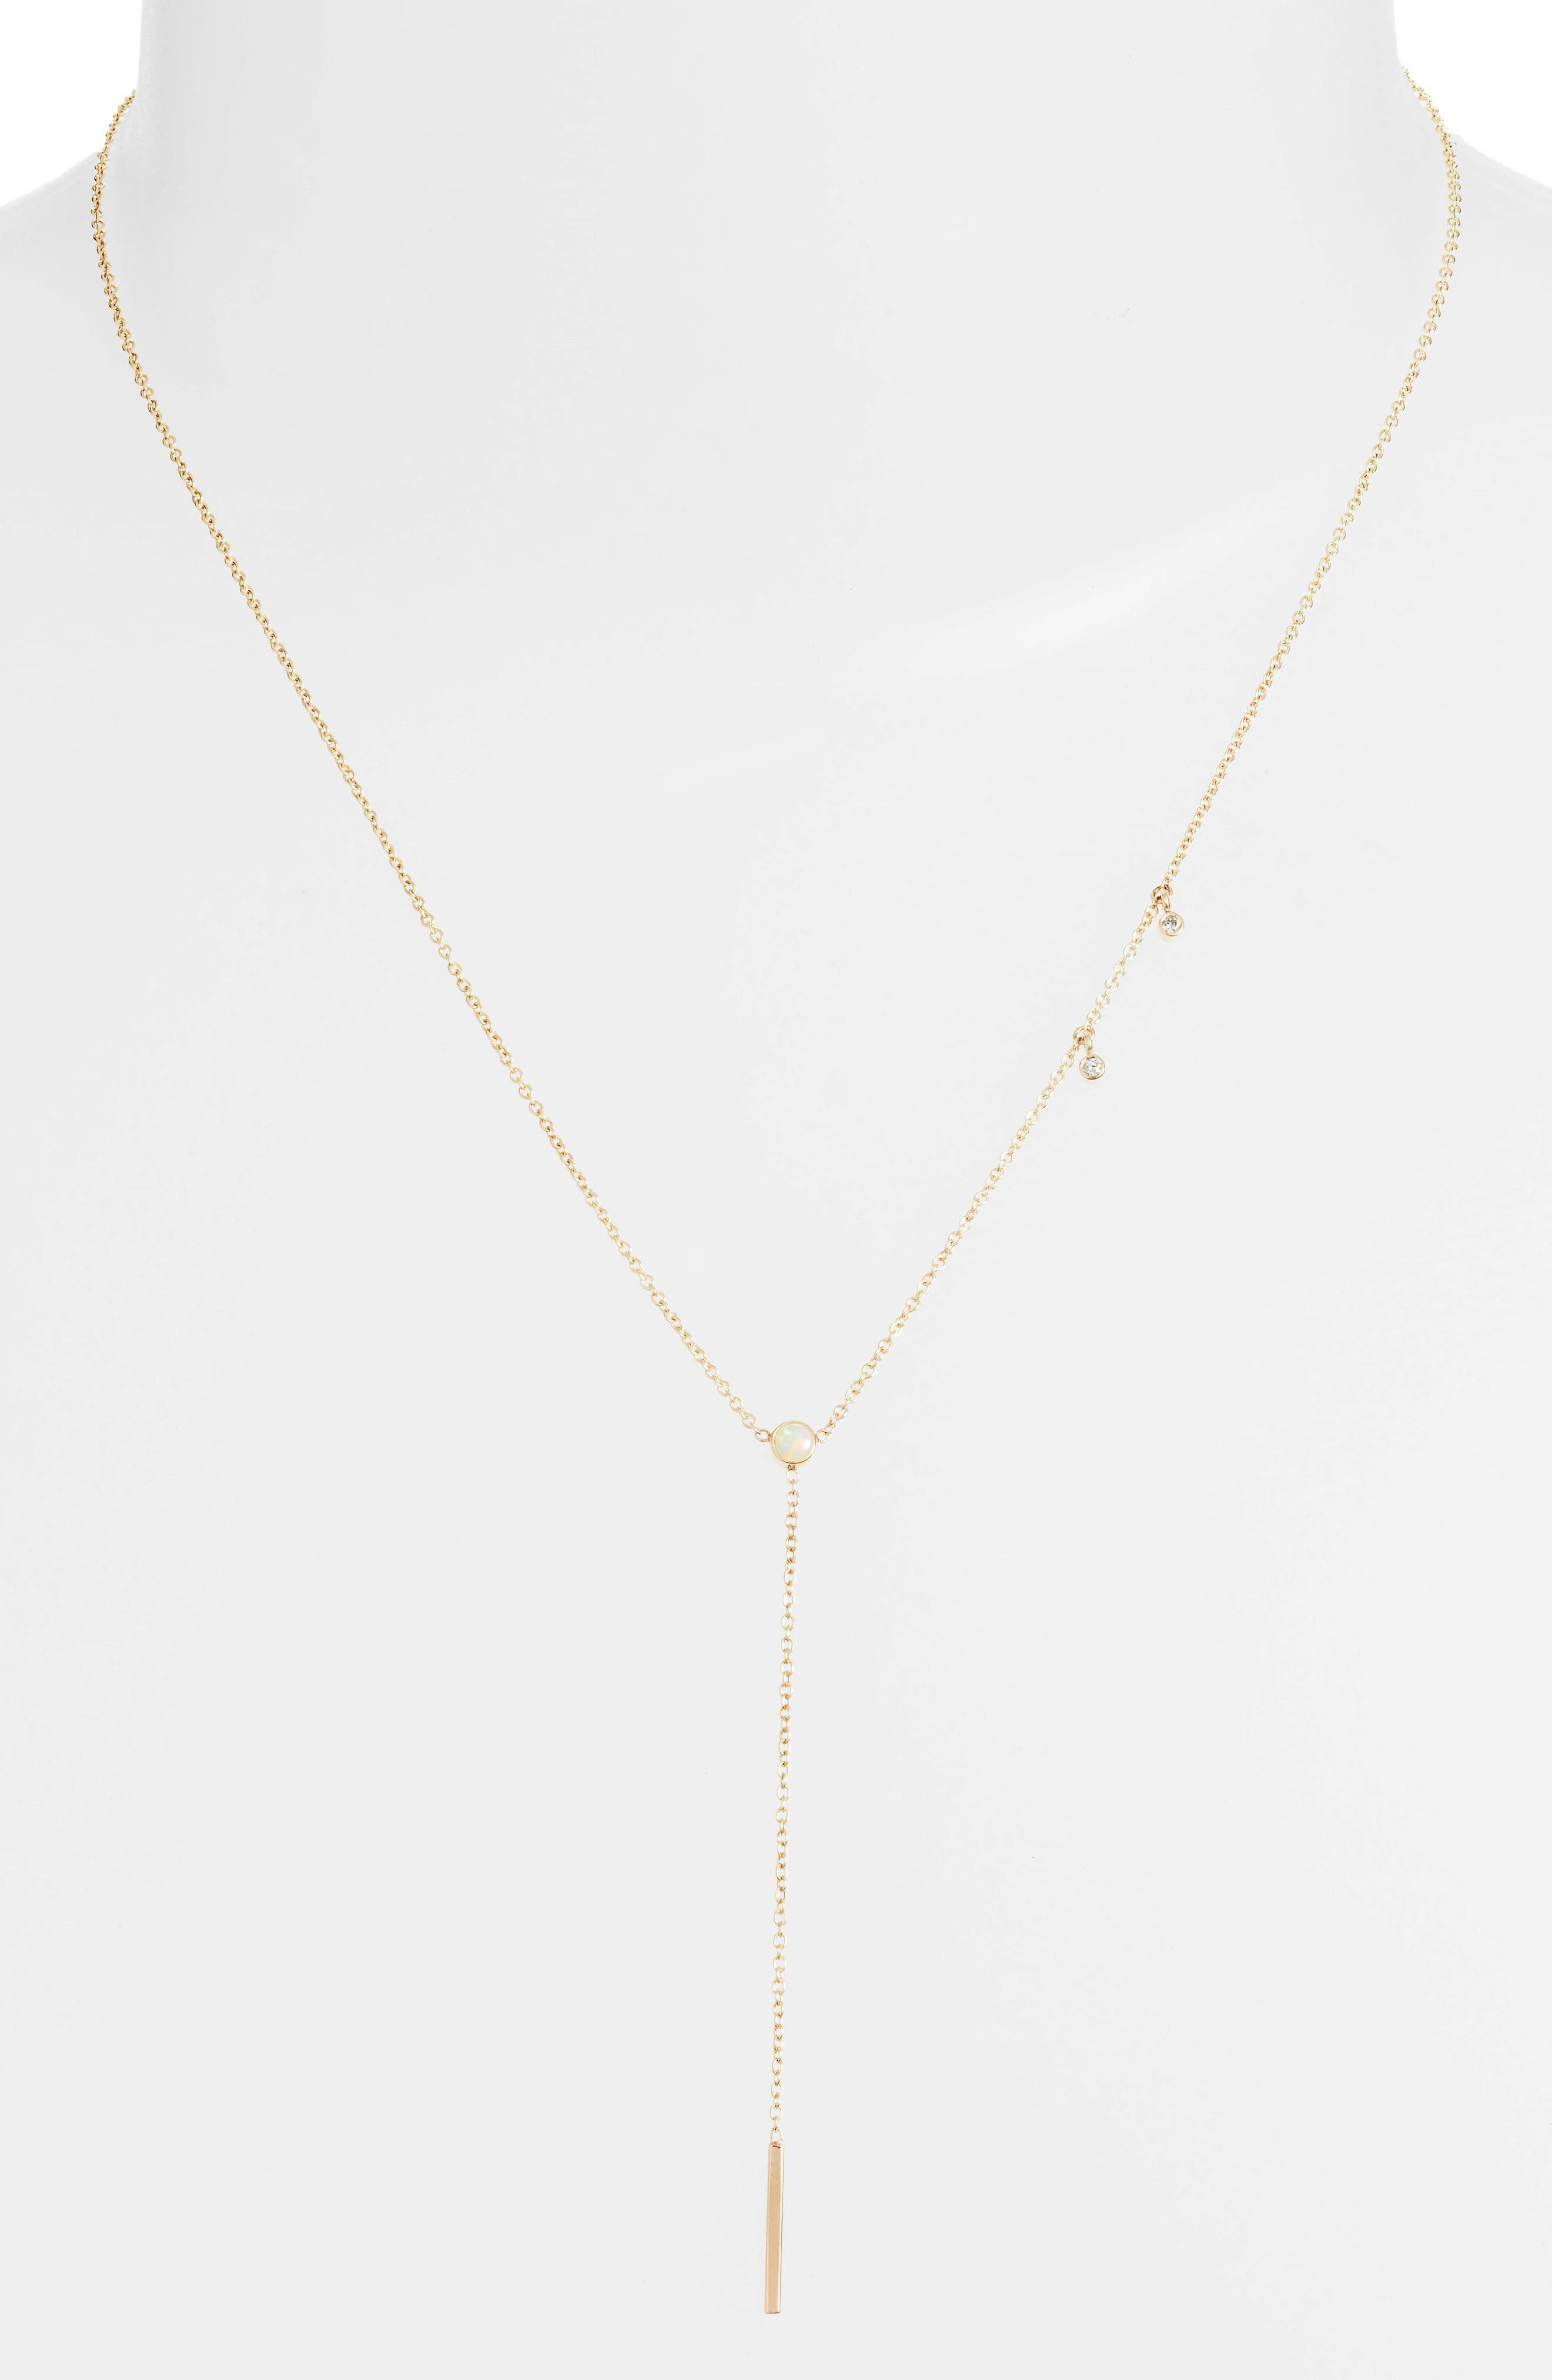 Zoe Chicco Diamond & Opal Bar Drop Lariat Necklace